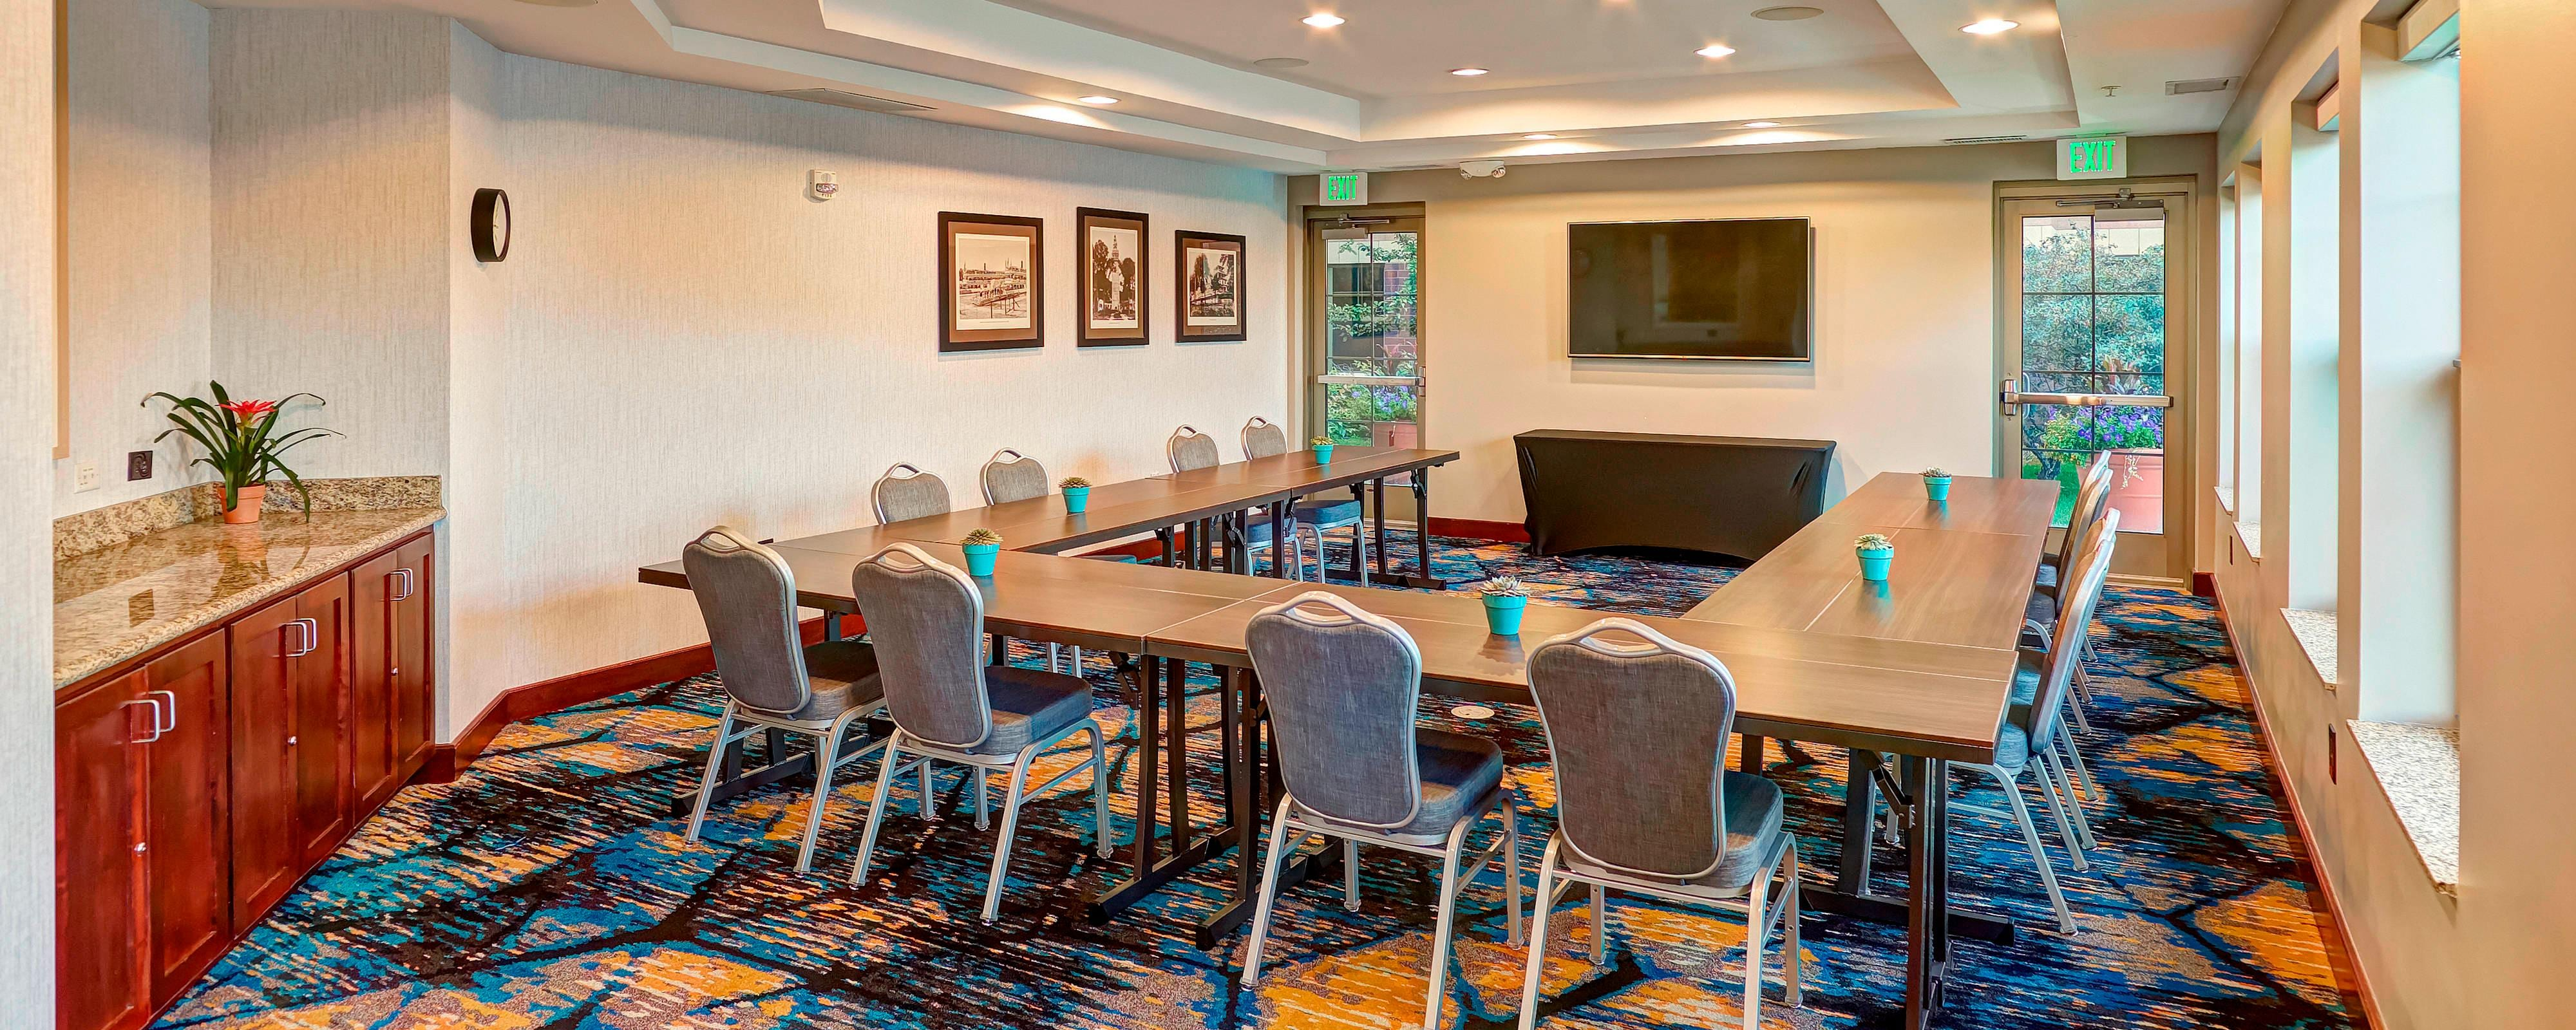 Hotels With Meeting Rooms In Minneapolis Mn